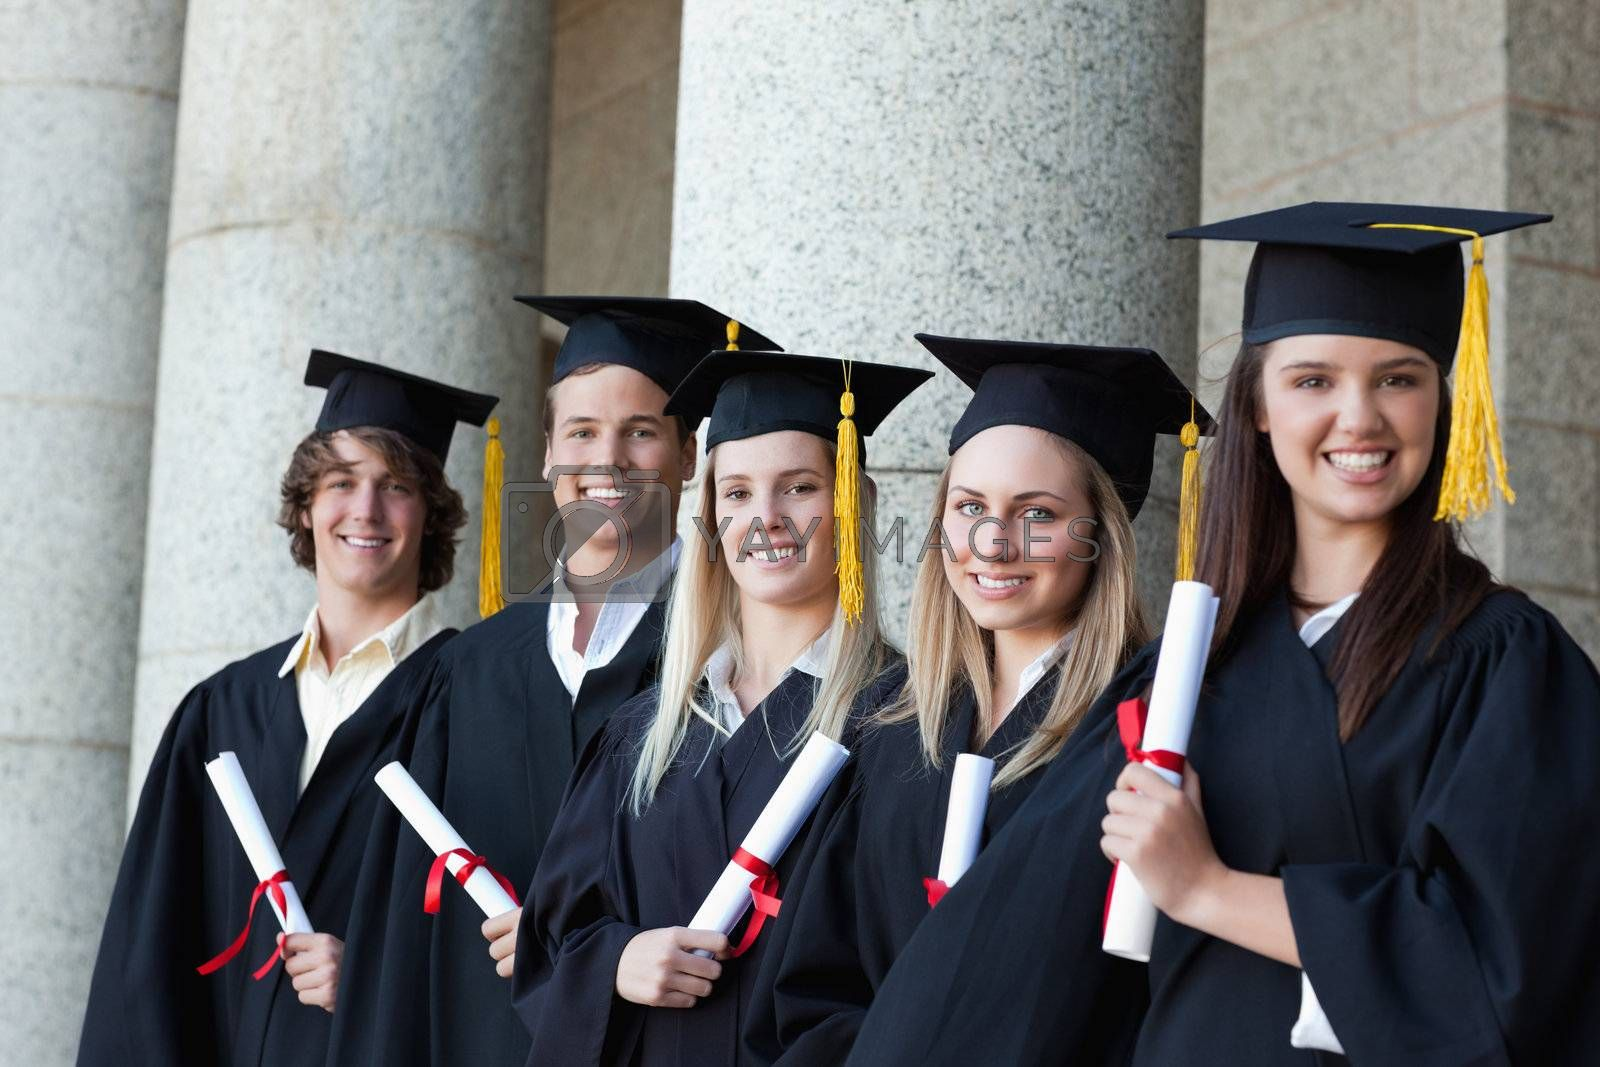 Smiling graduates posing in single line with columns in background